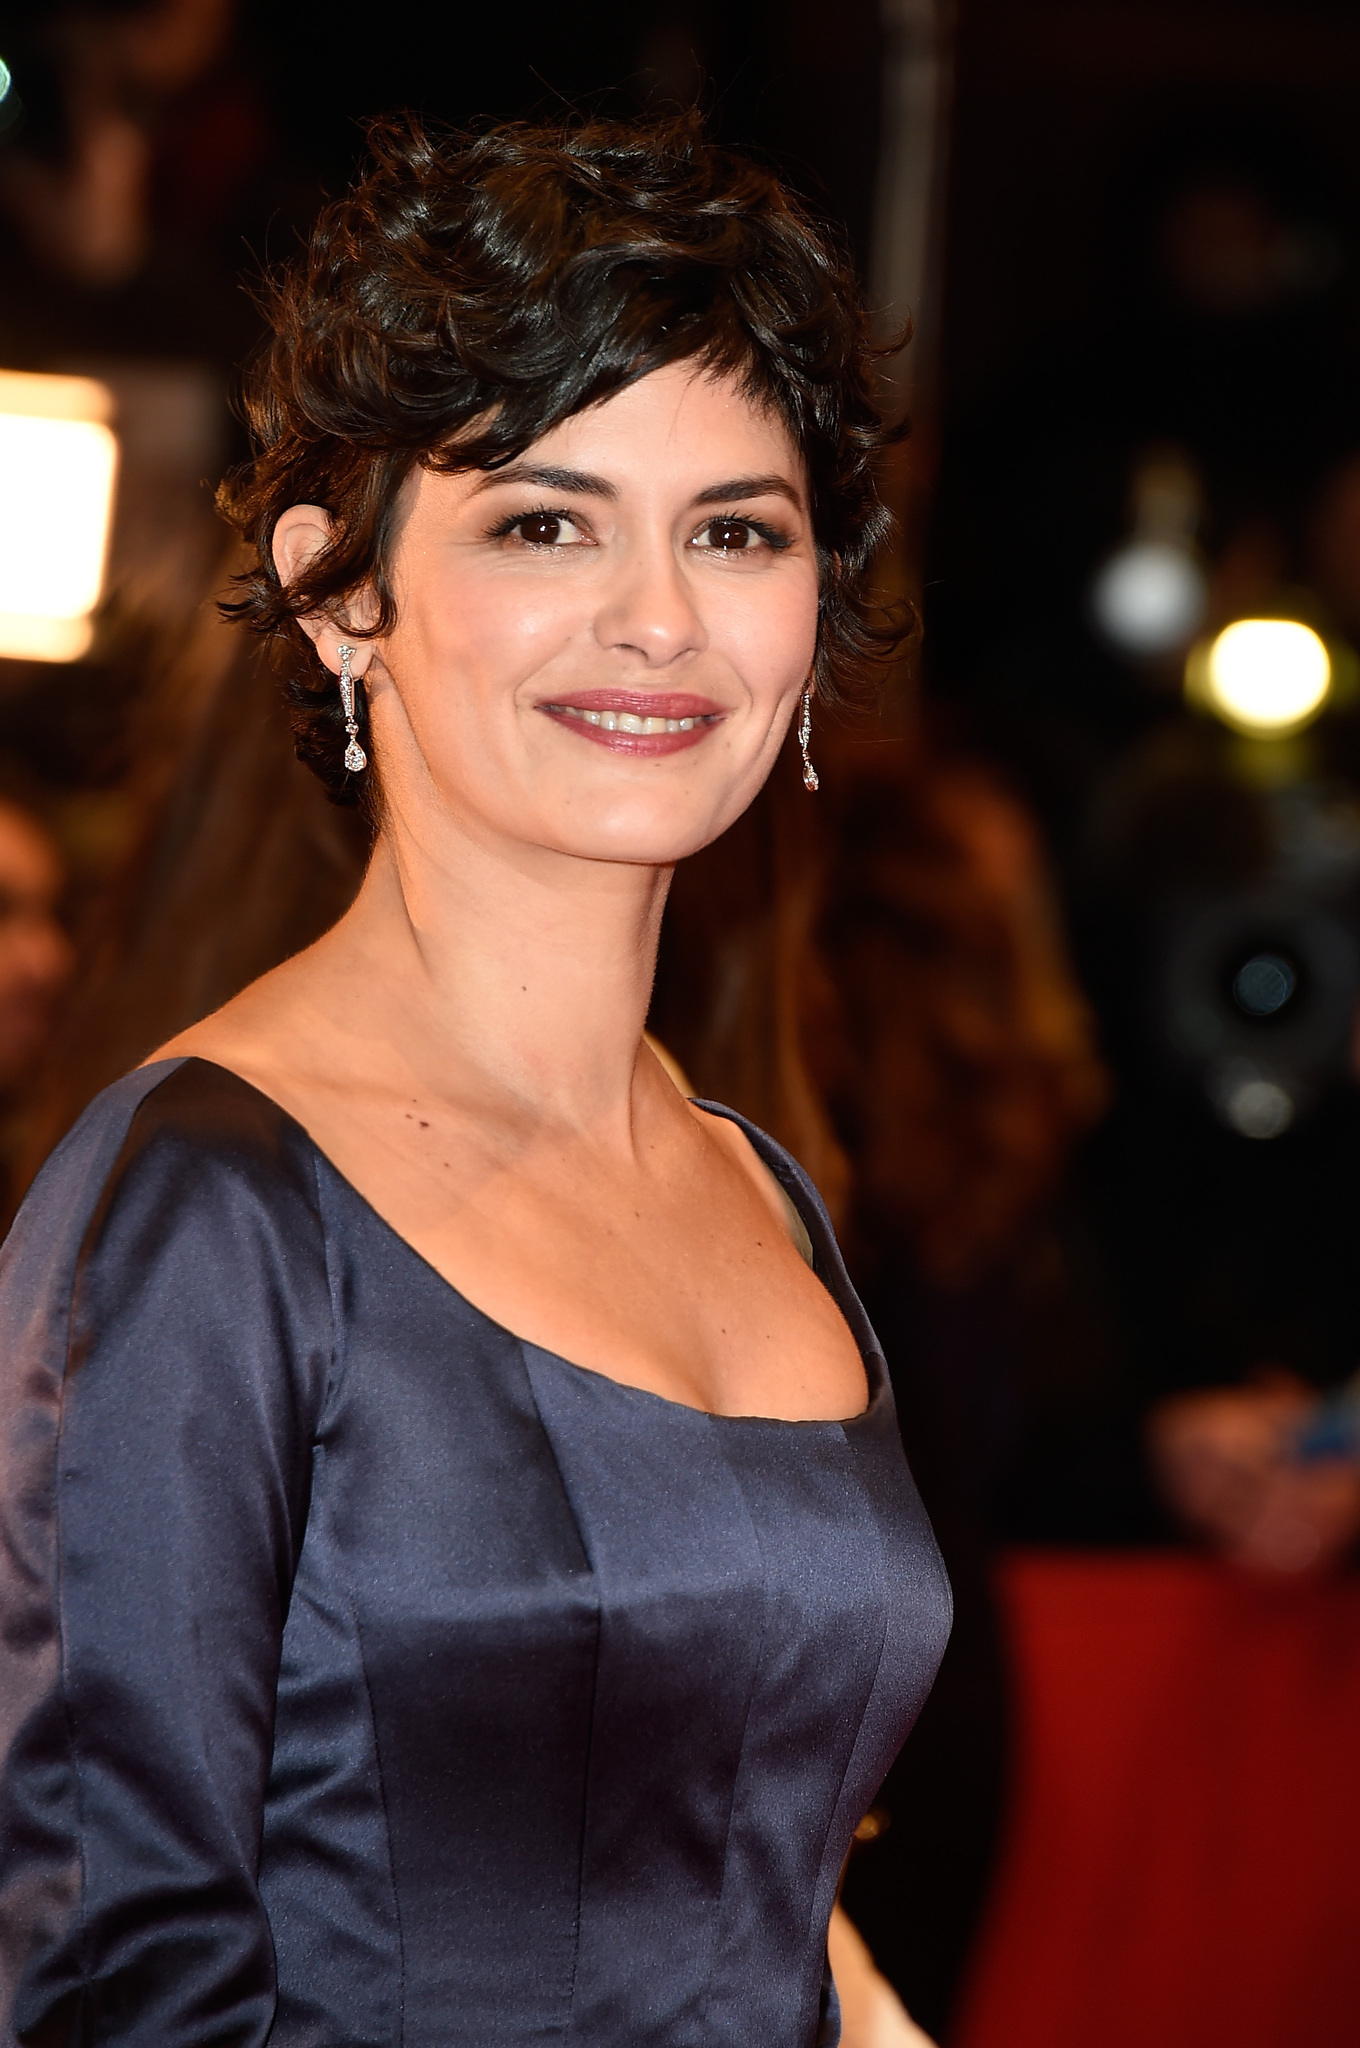 Audrey Tautou at an event for Nadie quiere la noche (2015)